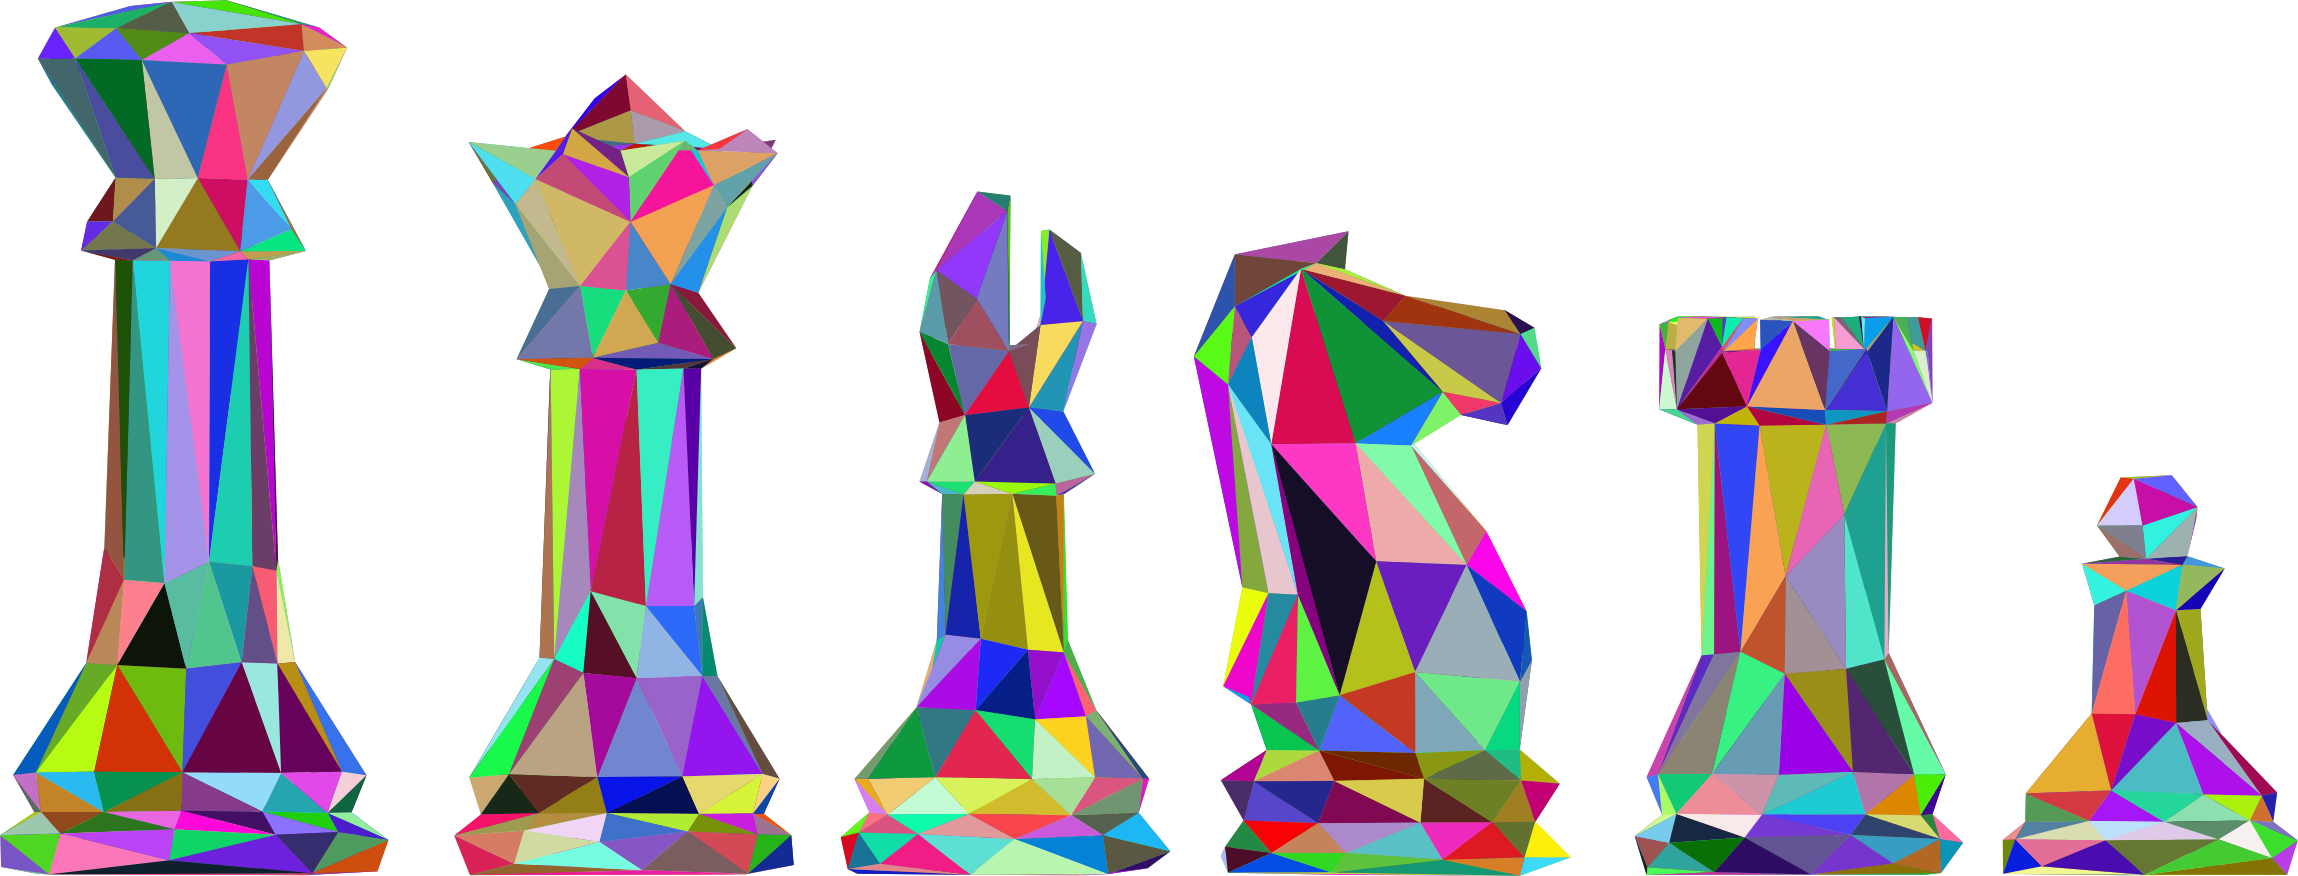 Low Poly Chess Pieces Prismatic by GDJ